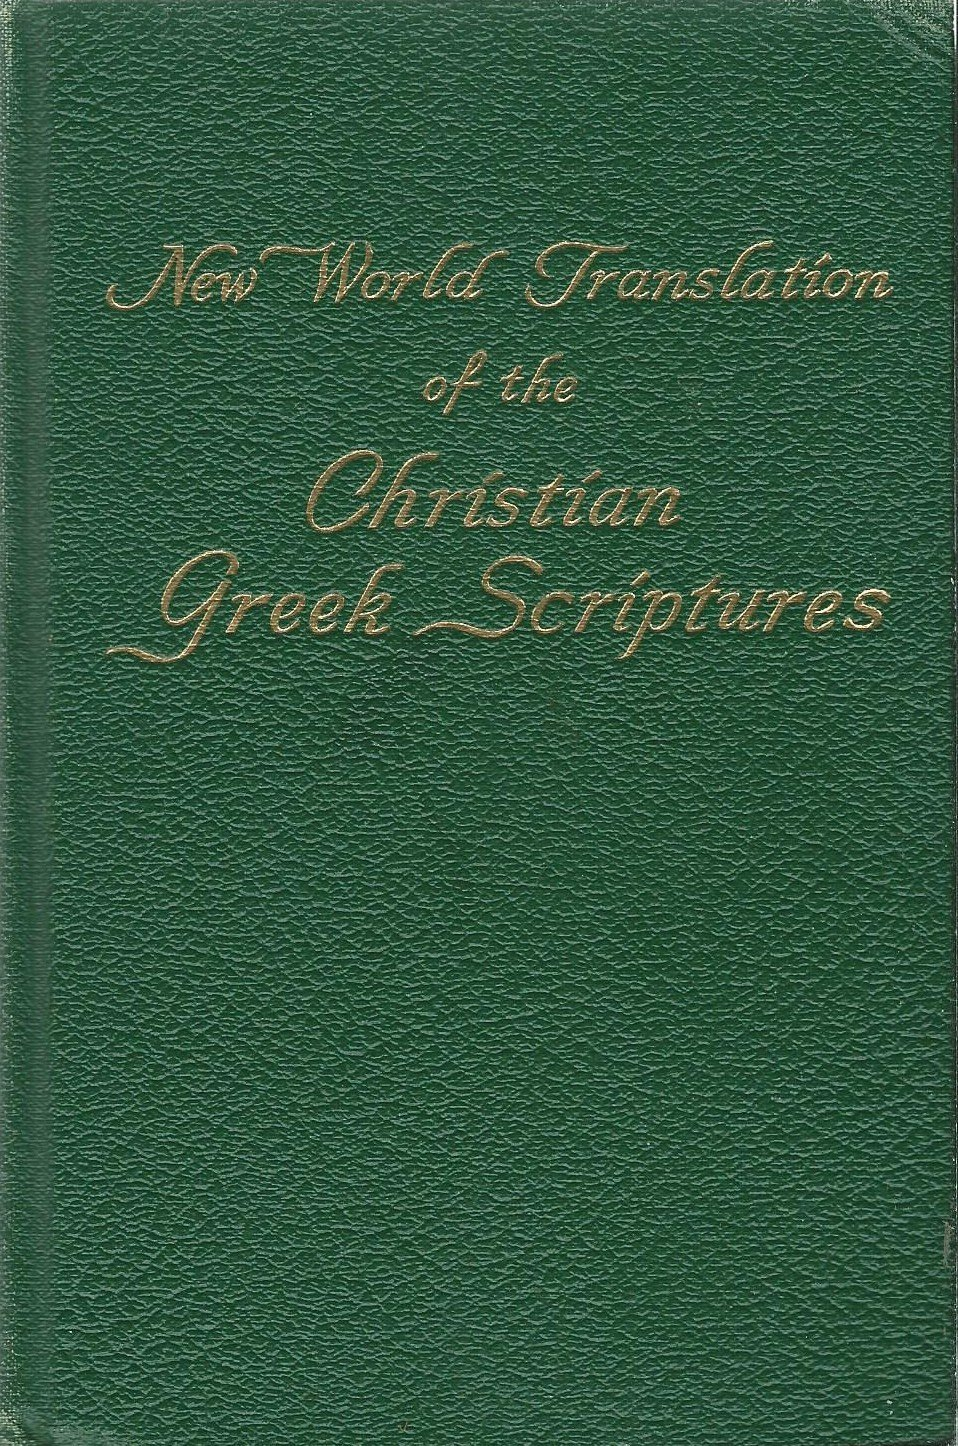 New World Translation of the Christian Greek Scriptures